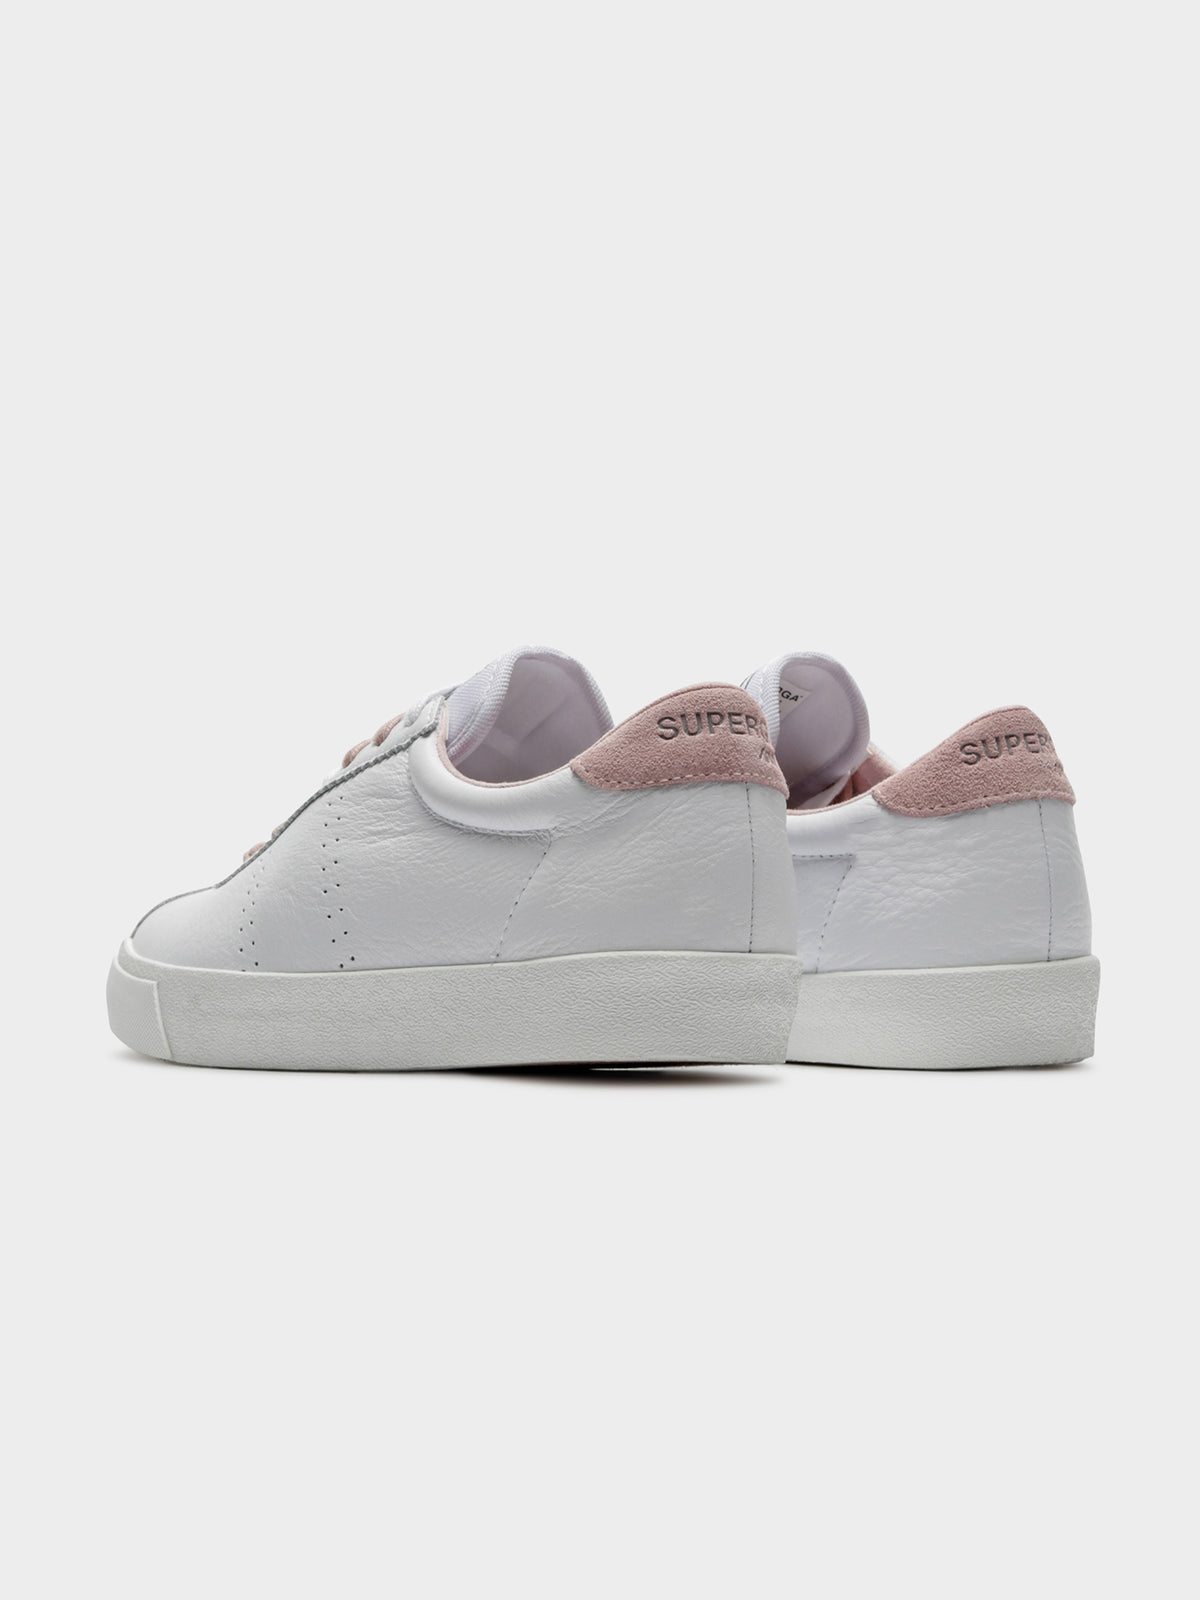 Womens 2843 Clubs Comfleasue Sneakers in White & Pink